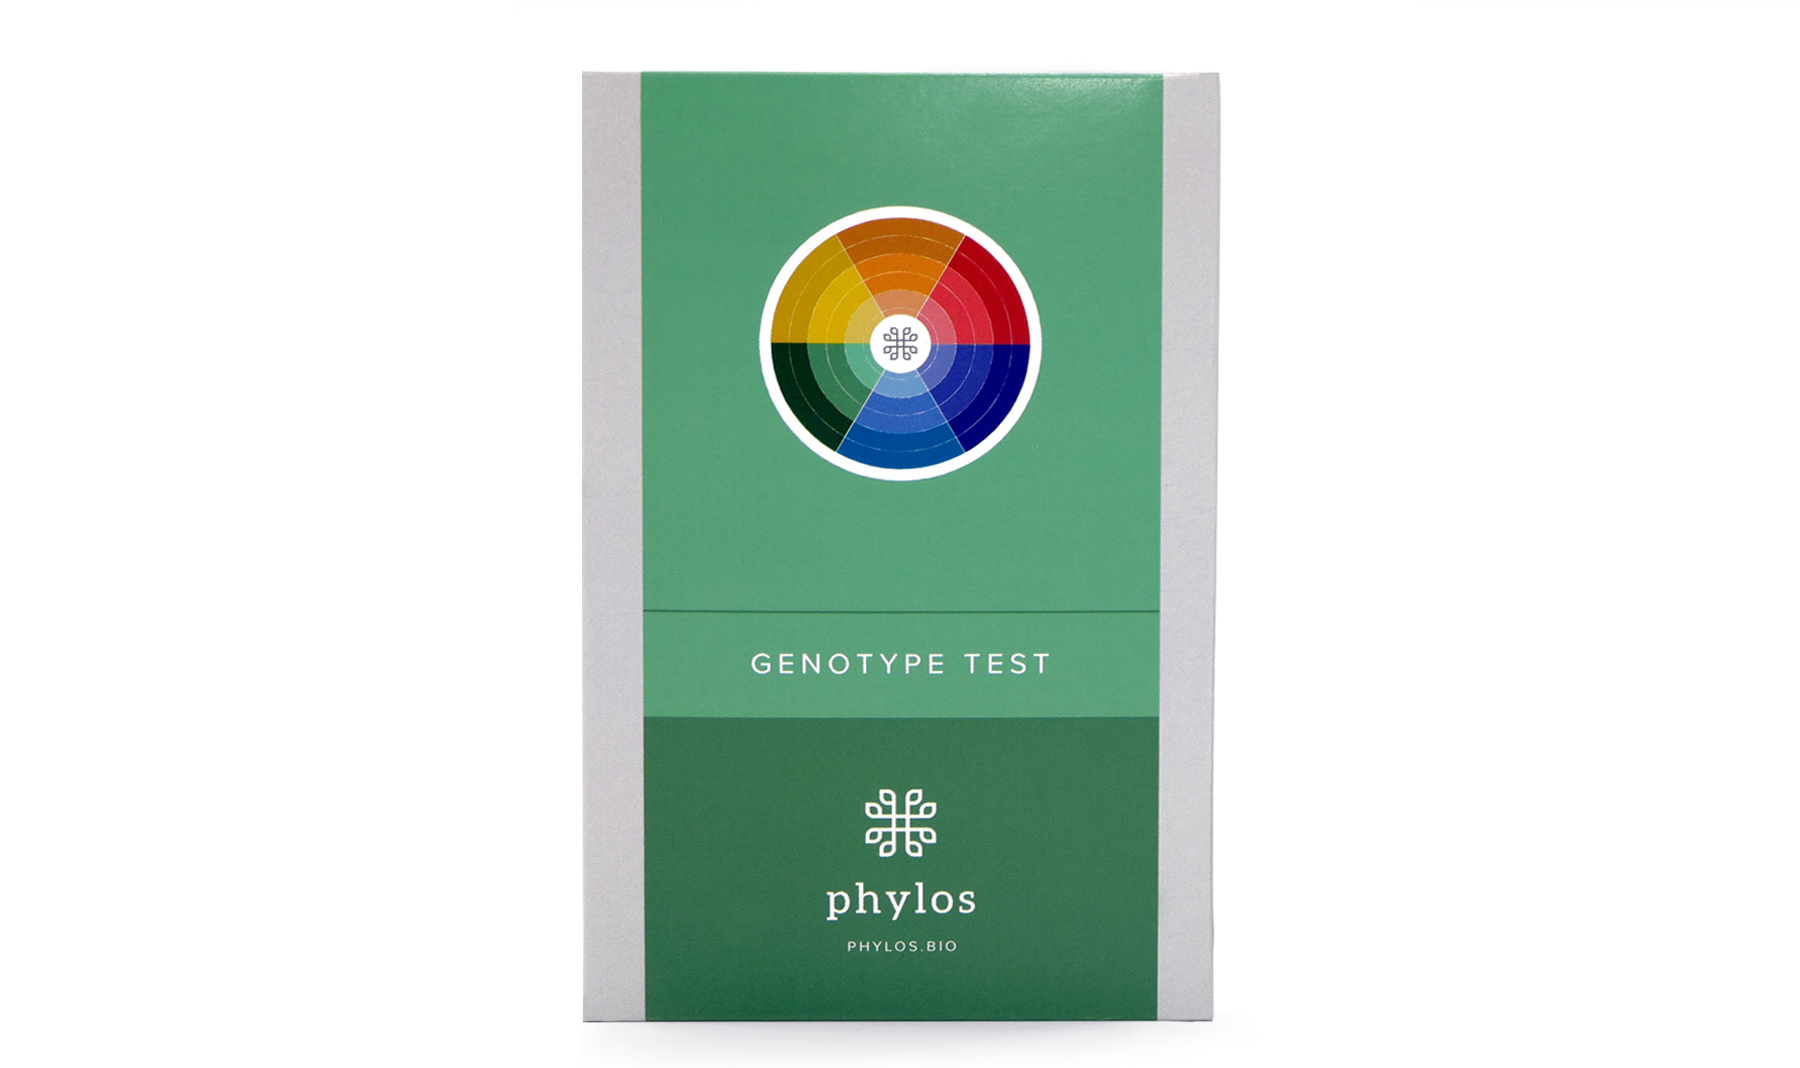 Genotype Test kit packaging